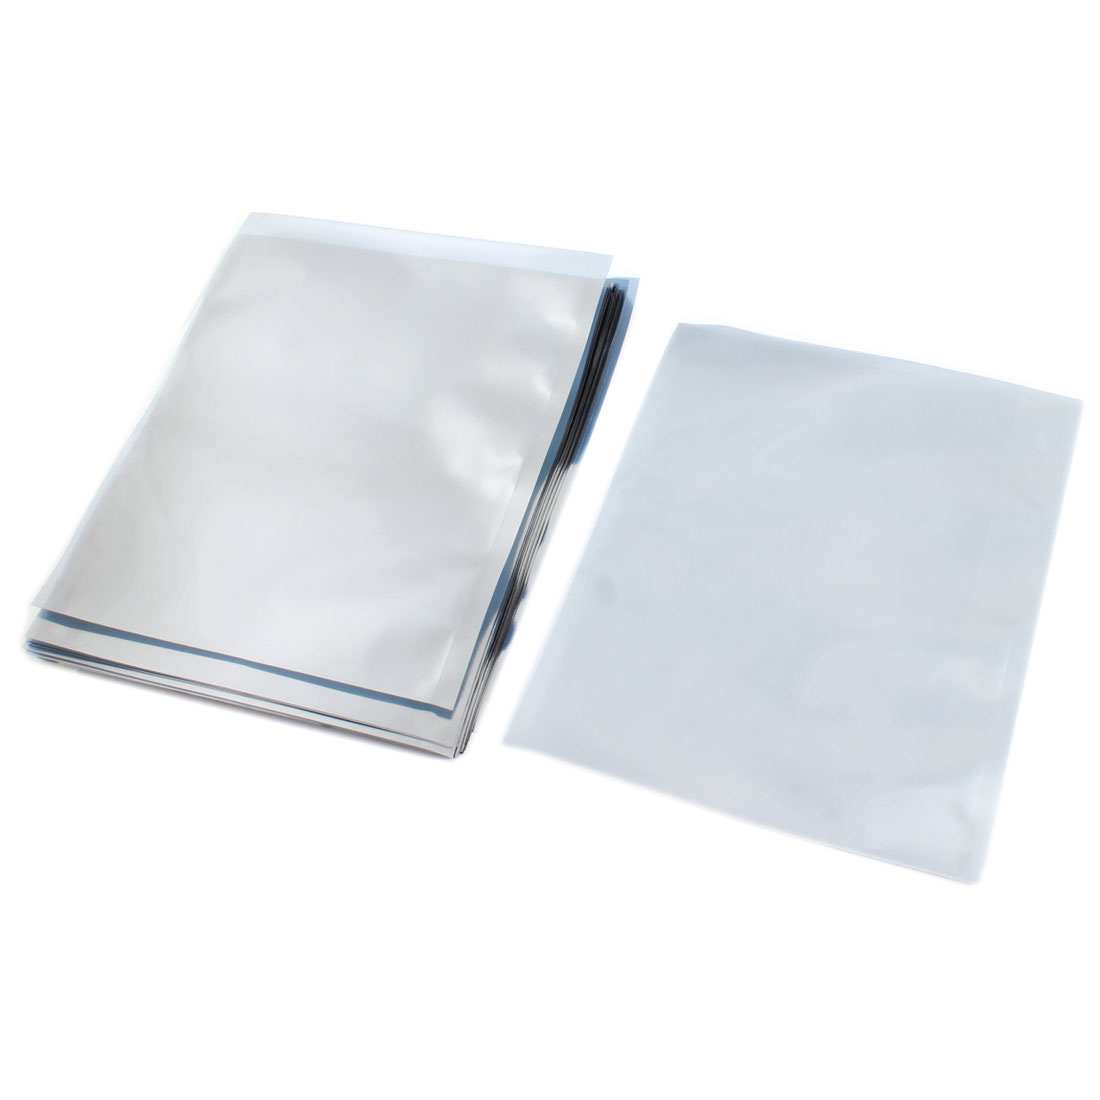 "50Pcs 6"" x 8"" 160x200mm ESD Antistatic Shielding Bags Open Top"